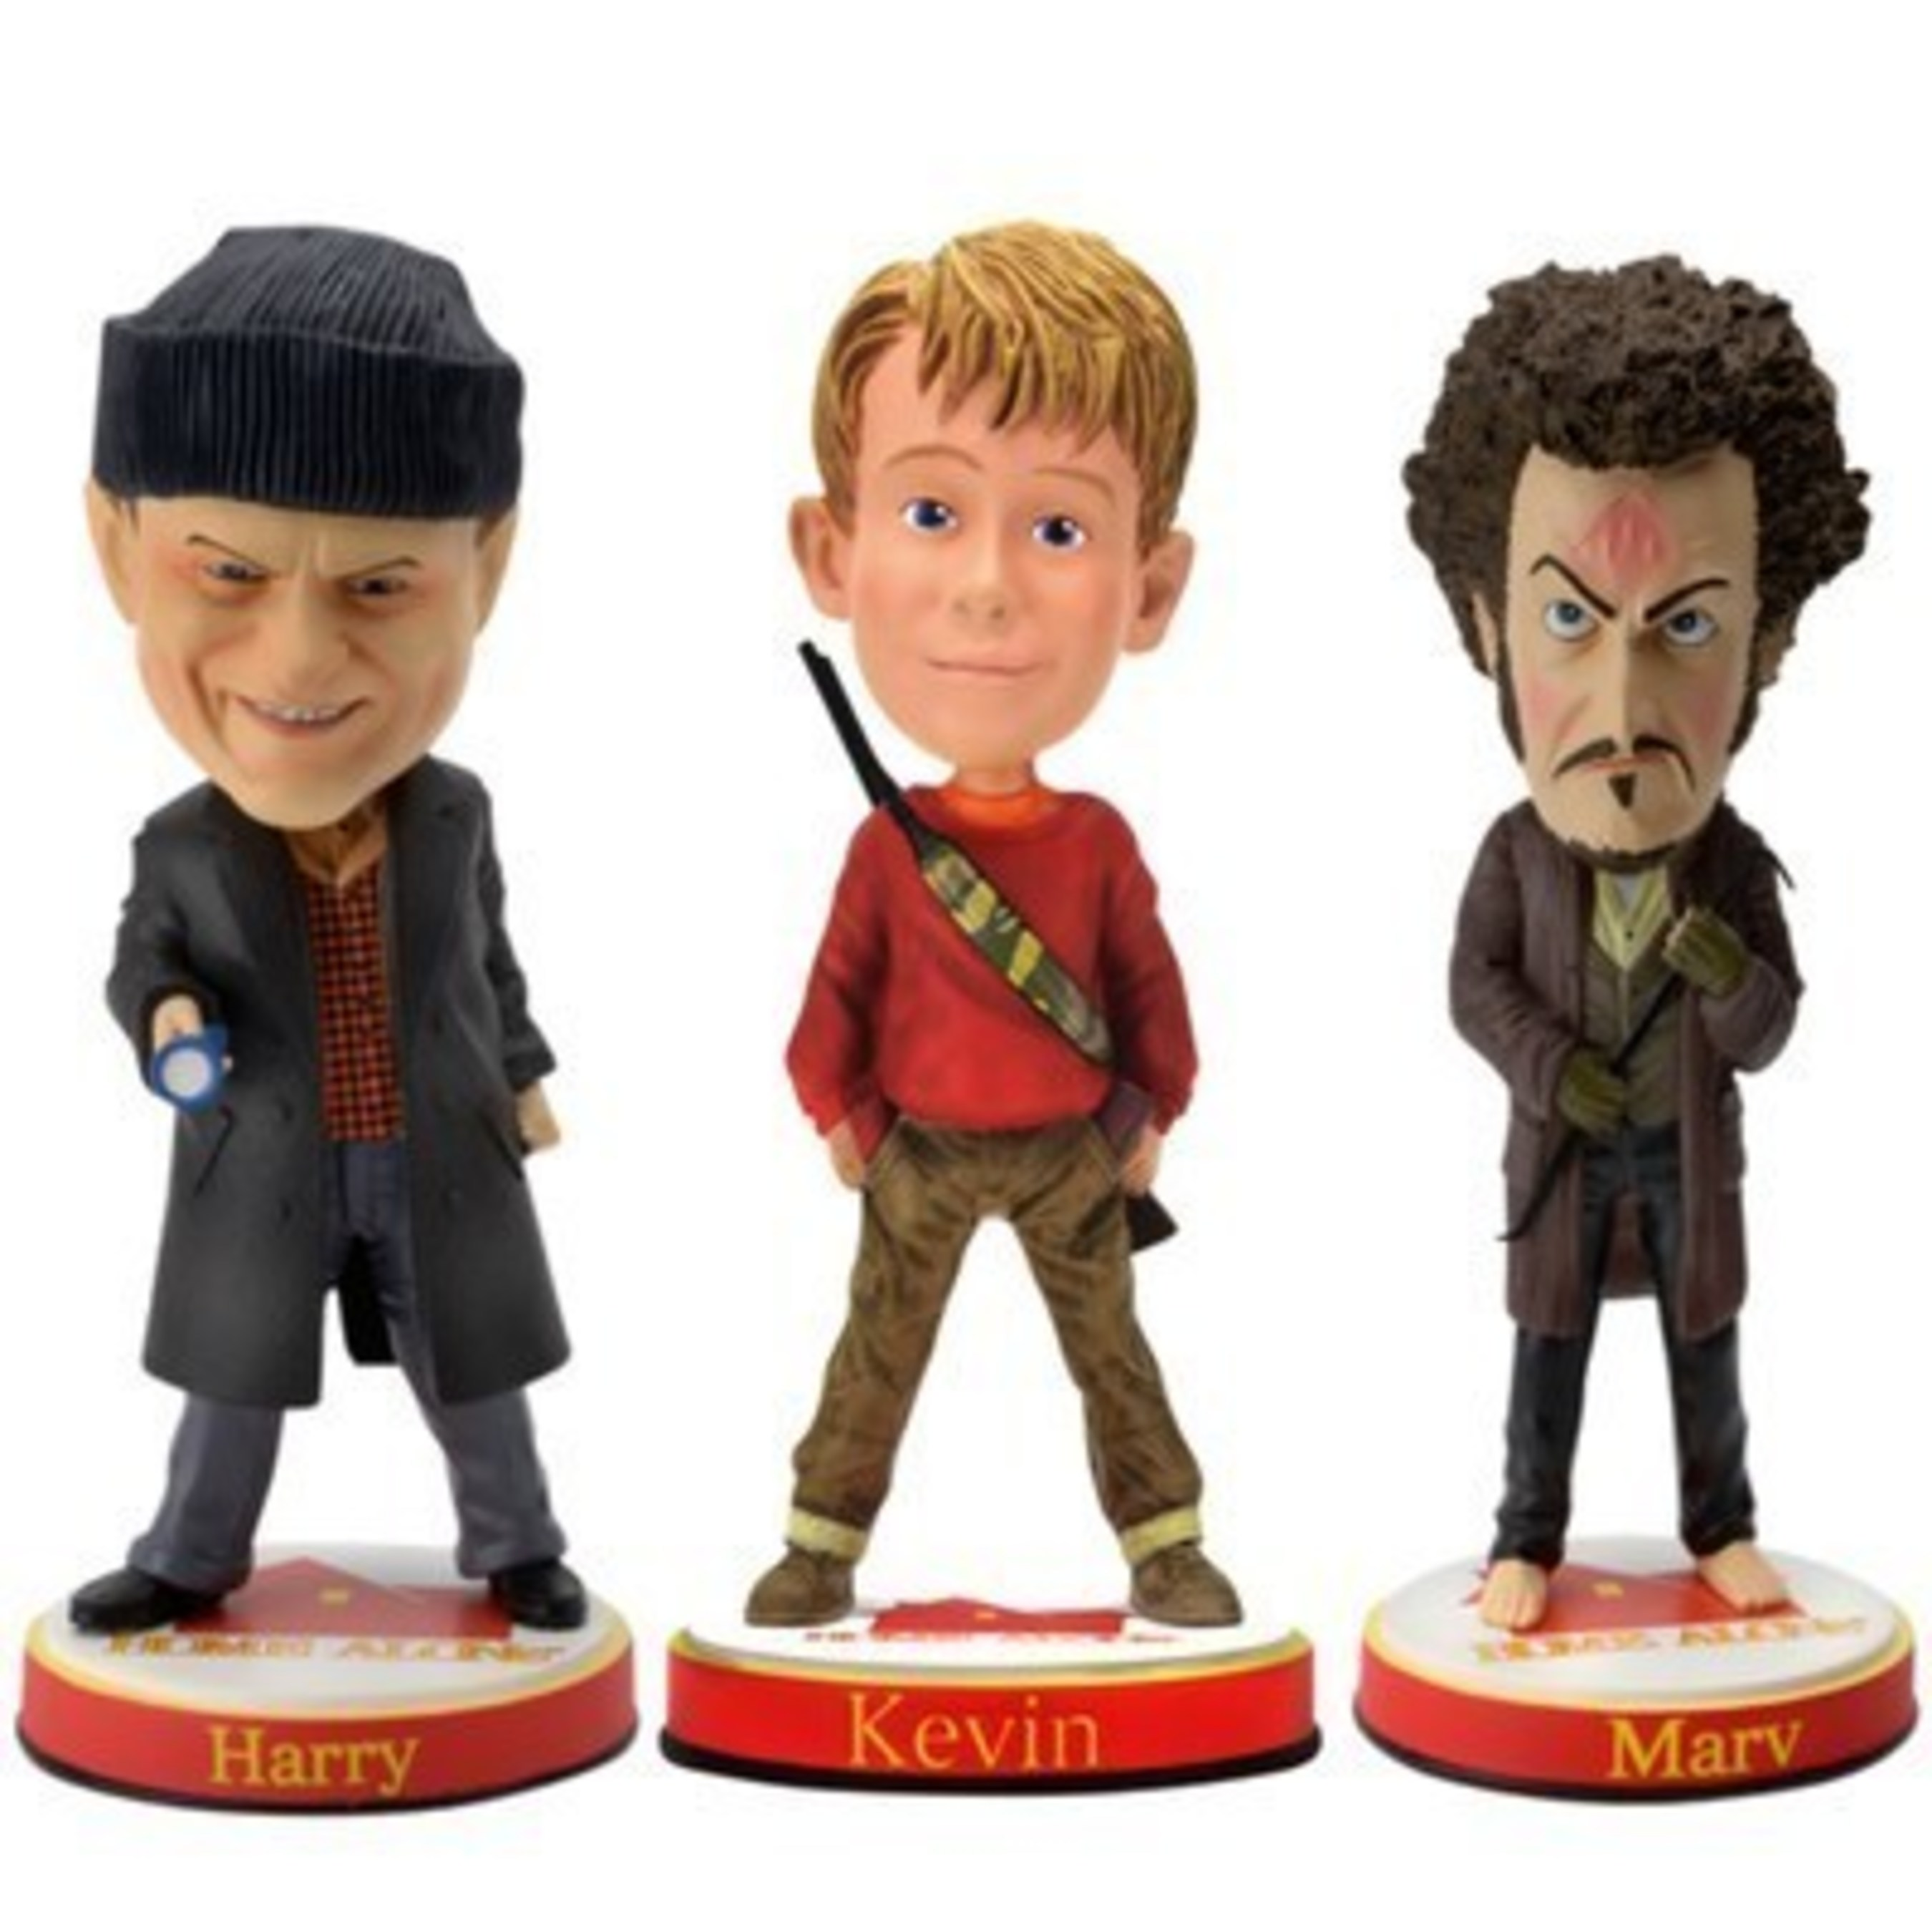 Kevin, Harry and Marv Bobbleheads from the National Bobblehead HOF and Museum